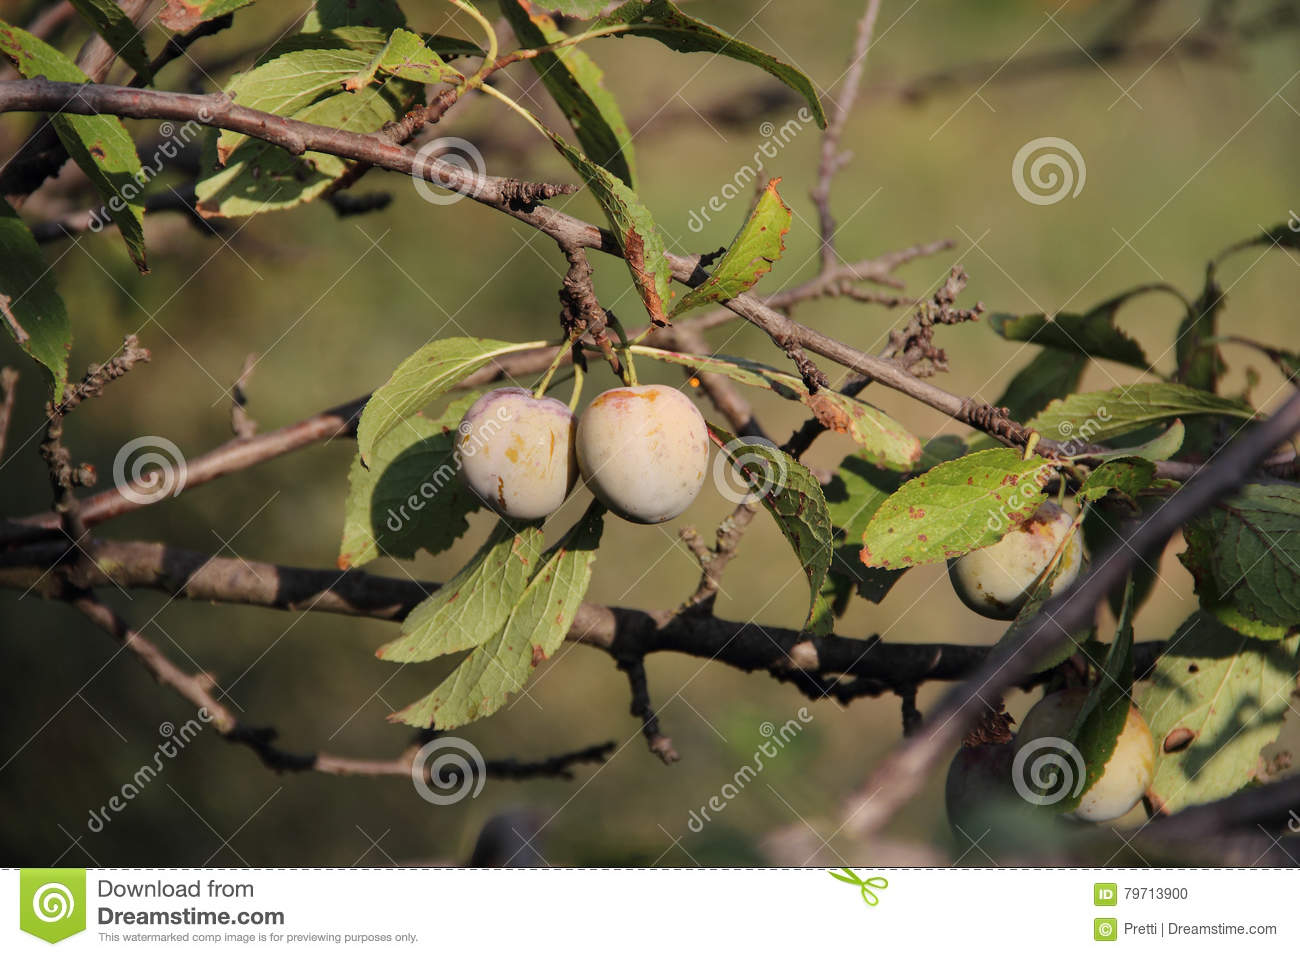 Ripe Plums On A Branch Of A Plum Tree Stock Photo - Image of natural ...